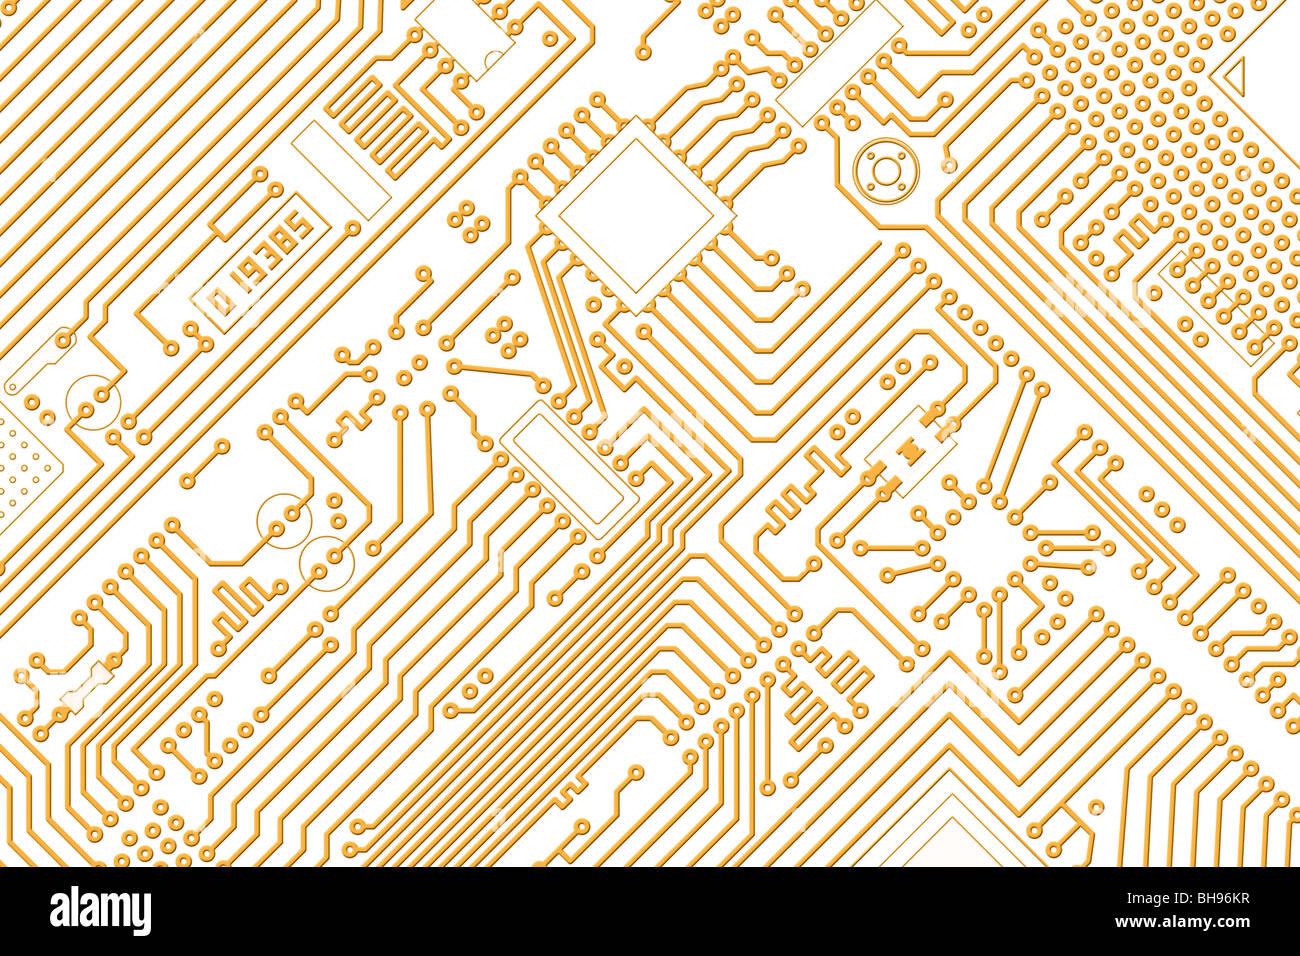 Industrial electronic high-tech graphics golden - white background - Stock Image